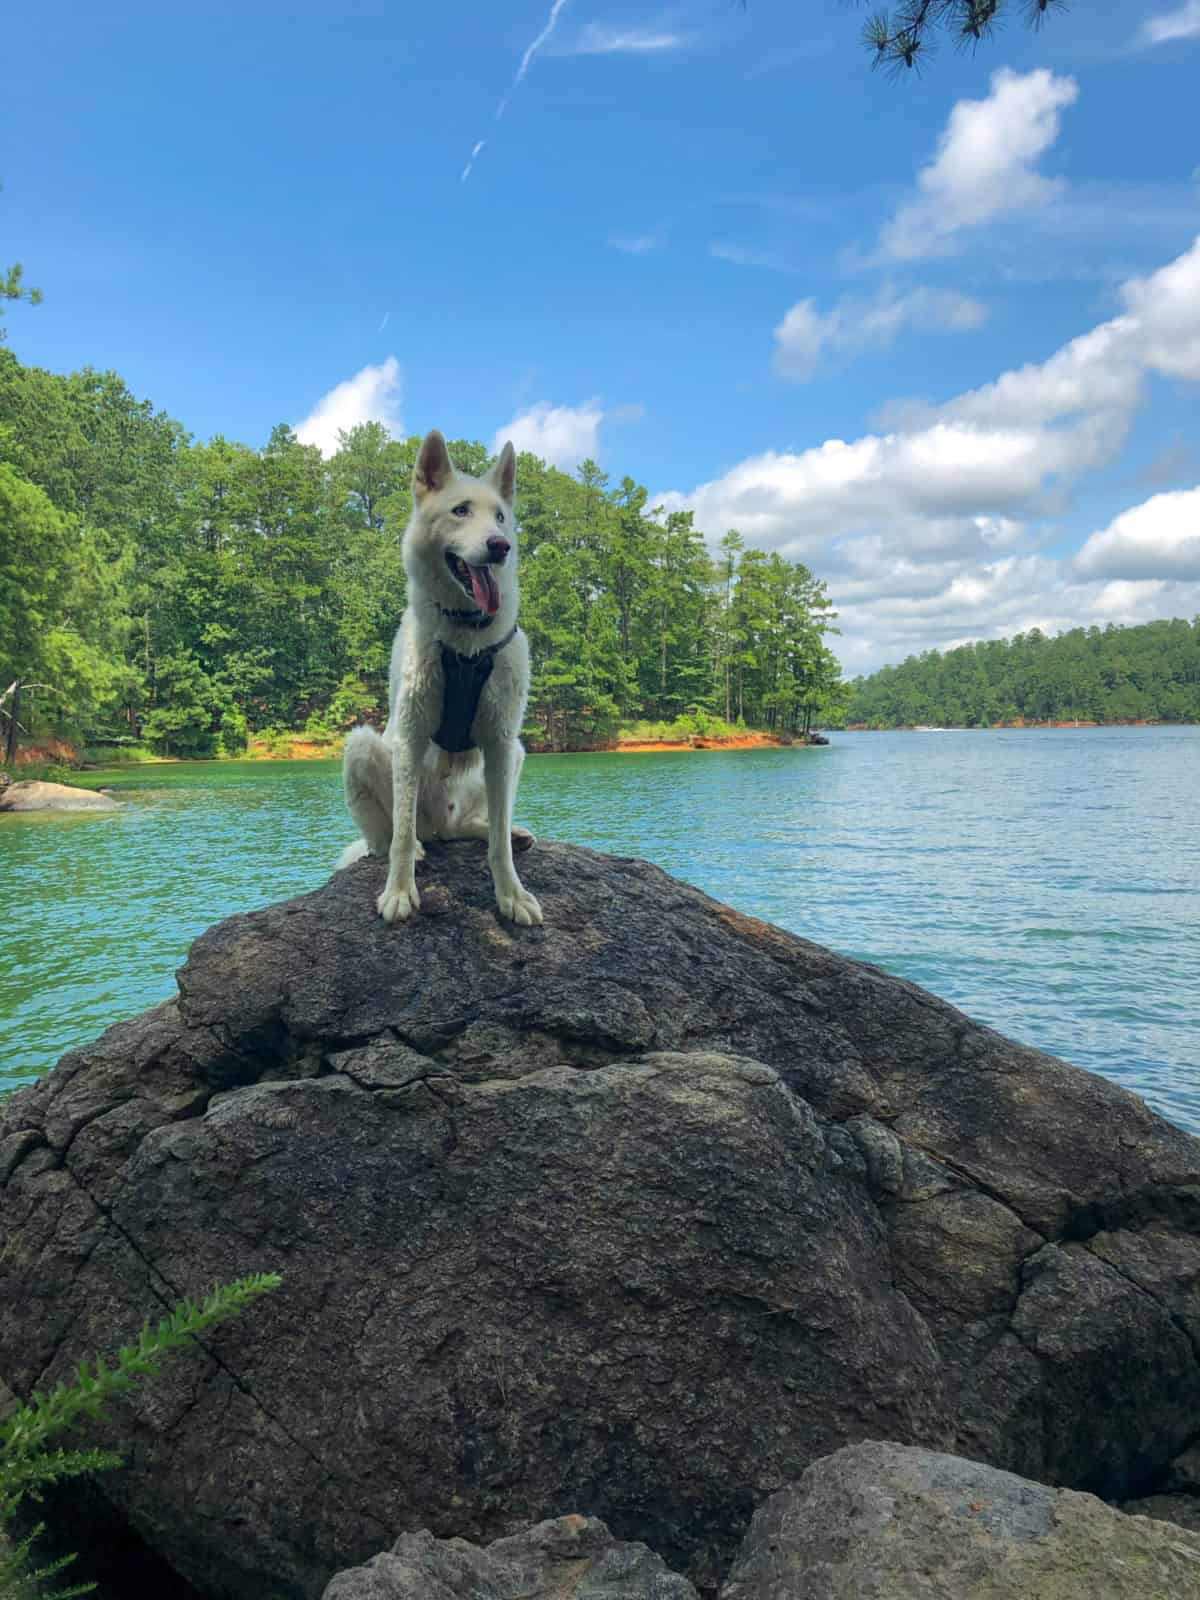 Finding a pet friendly vacation property or cabin might make the perfect trip. These tips will help you choose a place for you and your pet.